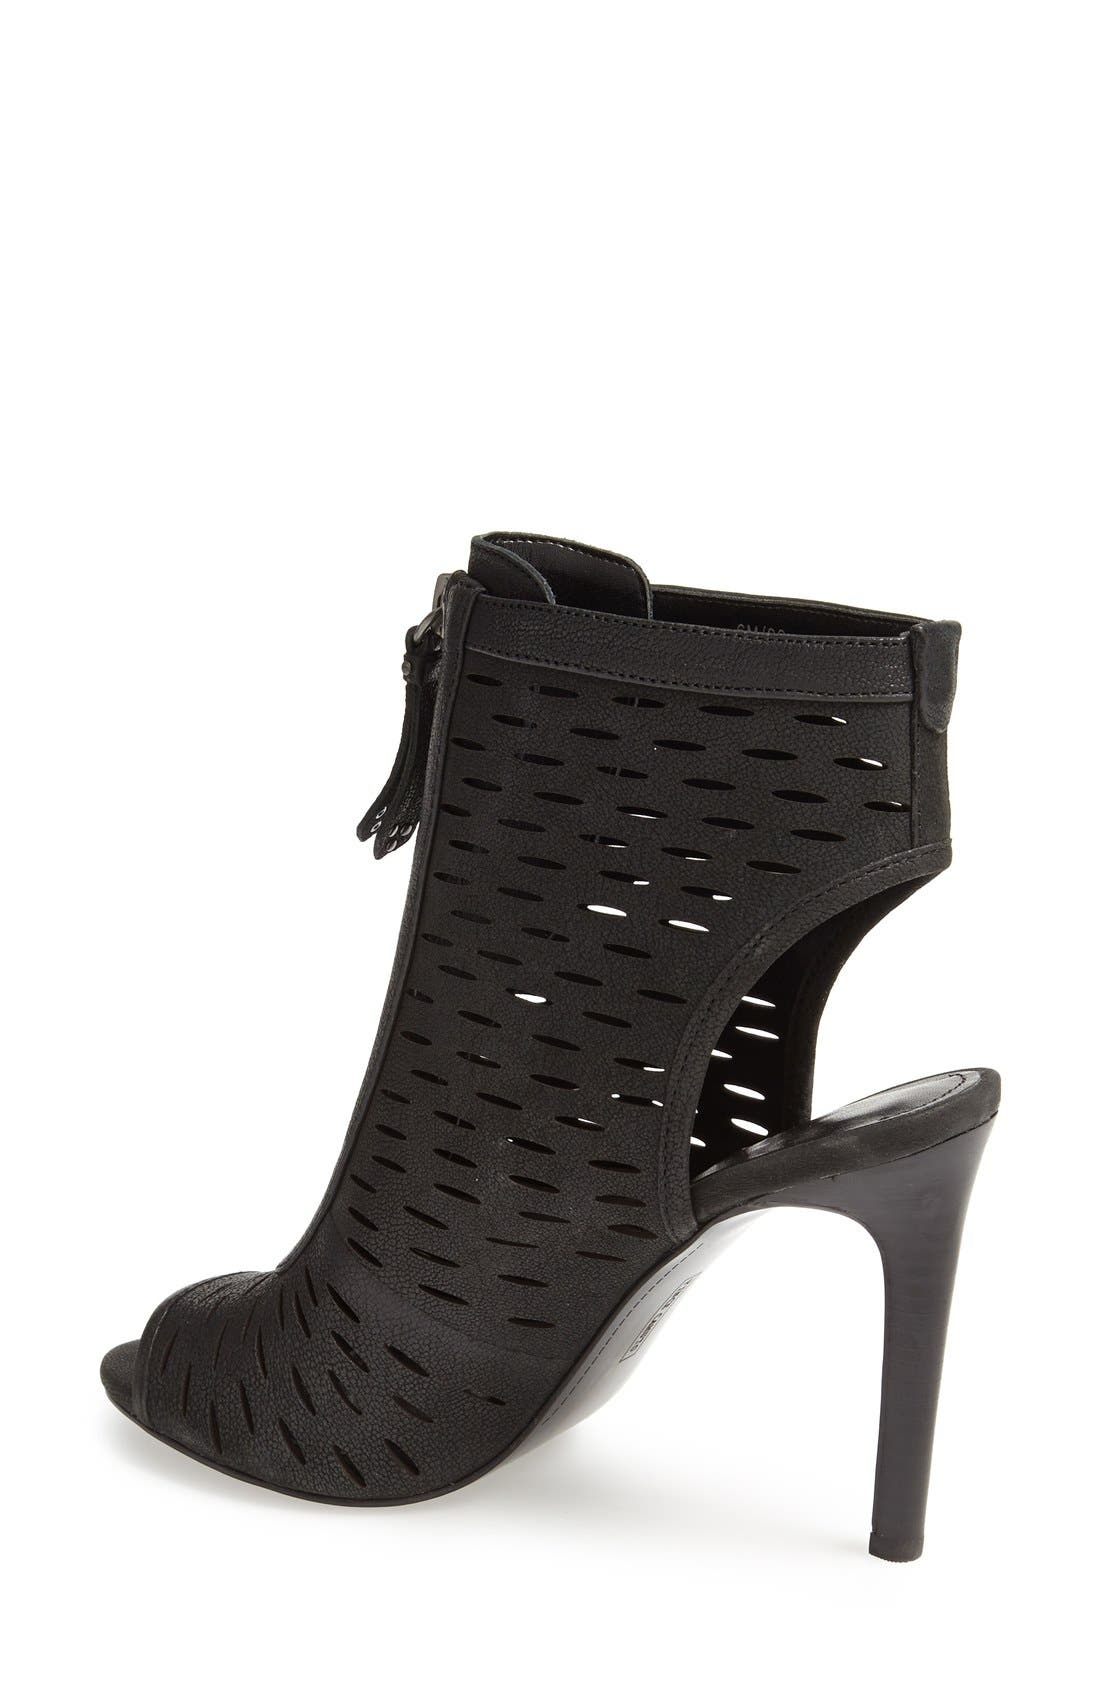 VINCE CAMUTO, 'Waver' Peep Toe Bootie, Alternate thumbnail 3, color, 001